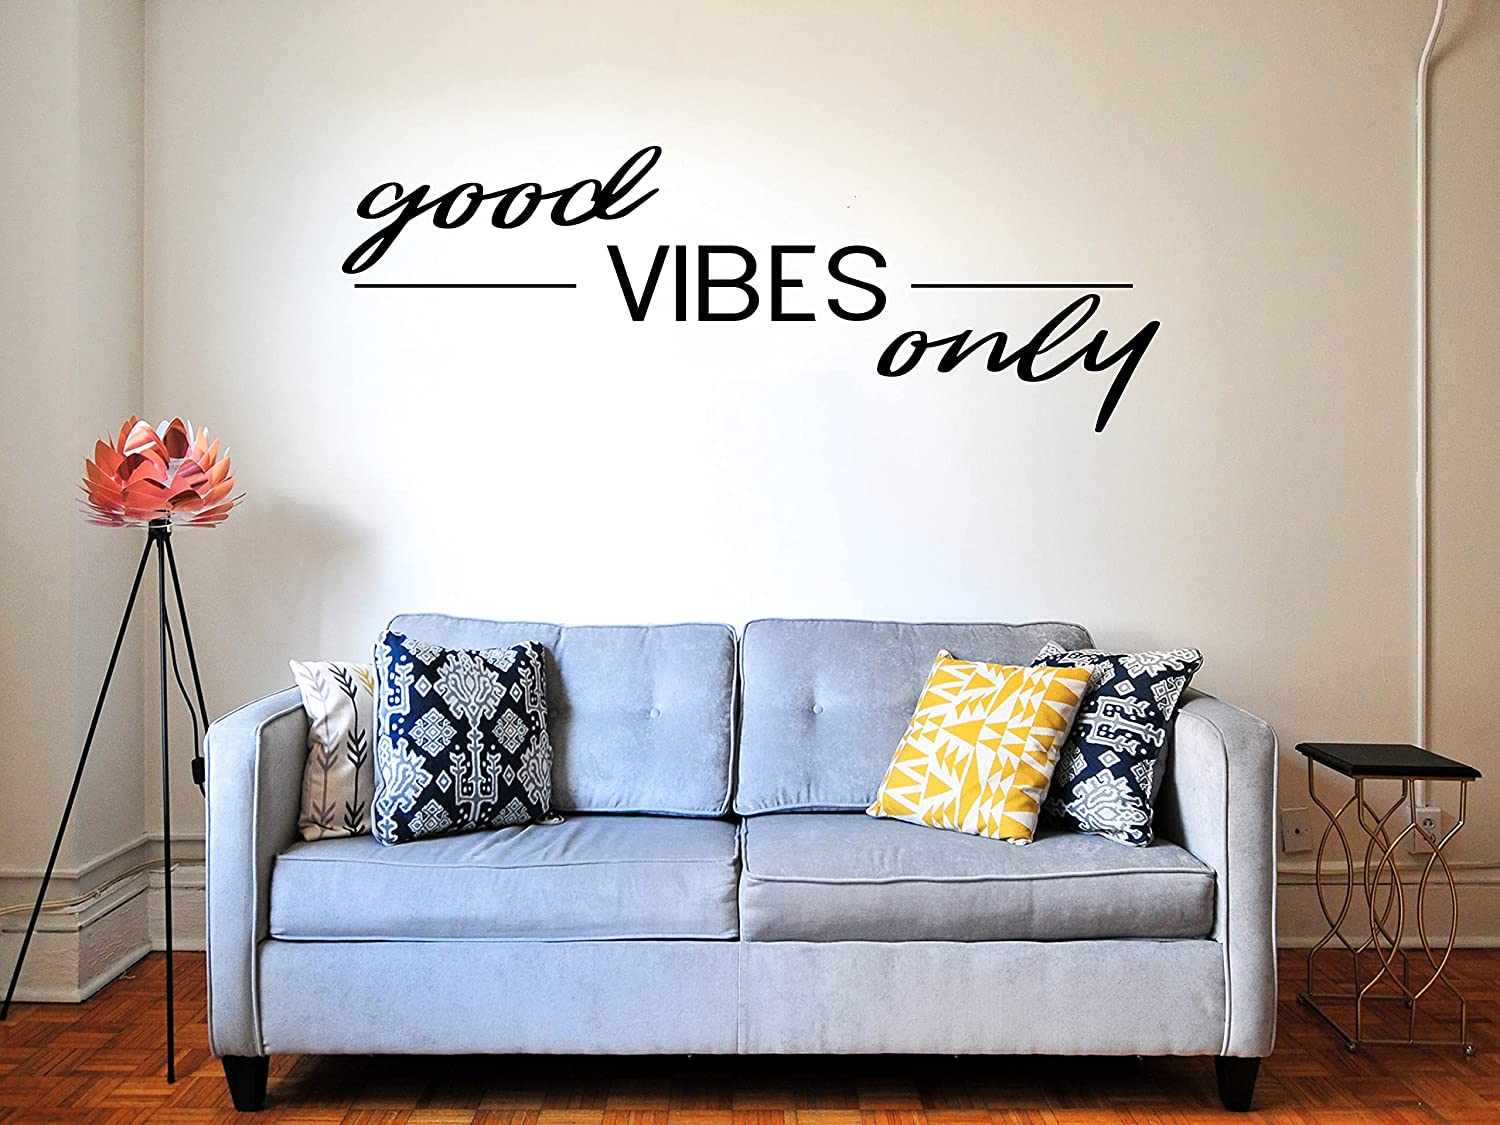 Good Vibes Only Vinyl Sign Decal Ar Raleigh Mall Baltimore Mall Sticker Decor Car Home for